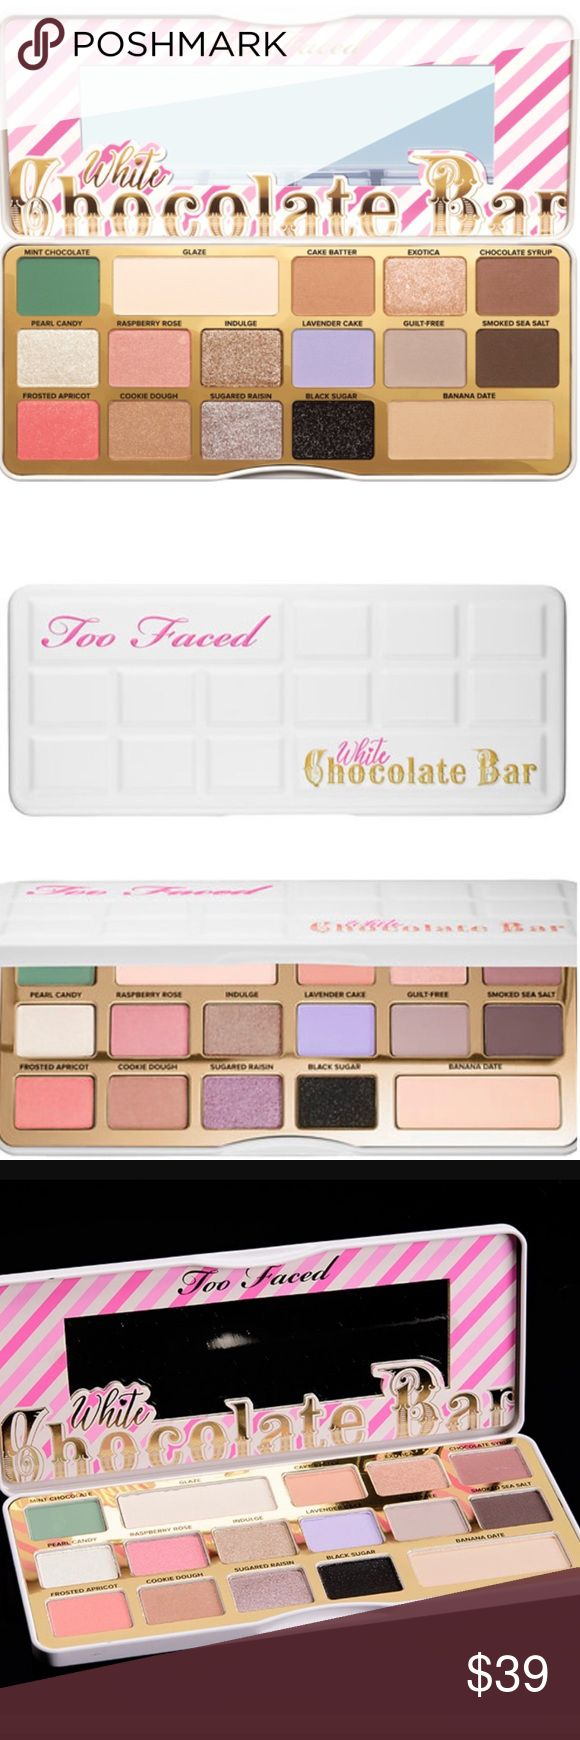 Too Faced White Chocolate Eyeshadow Palette New Too Faced White Chocolate Eyeshadow Palette  Authentic New. This is absolutely beautiful and smells delicious. You can create many looks with this easy blended assortment of gorgeous shadows. You won't be disappointed. I love the one I have. :) Sephora Makeup Eyeshadow